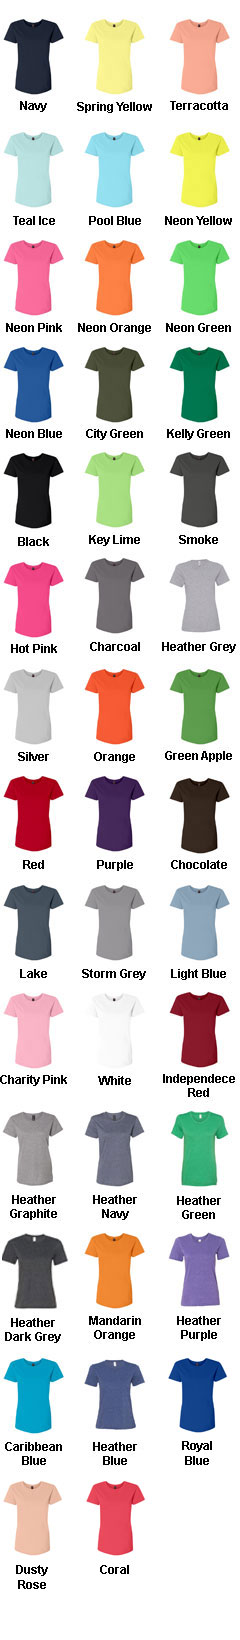 Anvil Ladies 100% Ringspun Cotton Fashion Fit Tee - All Colors